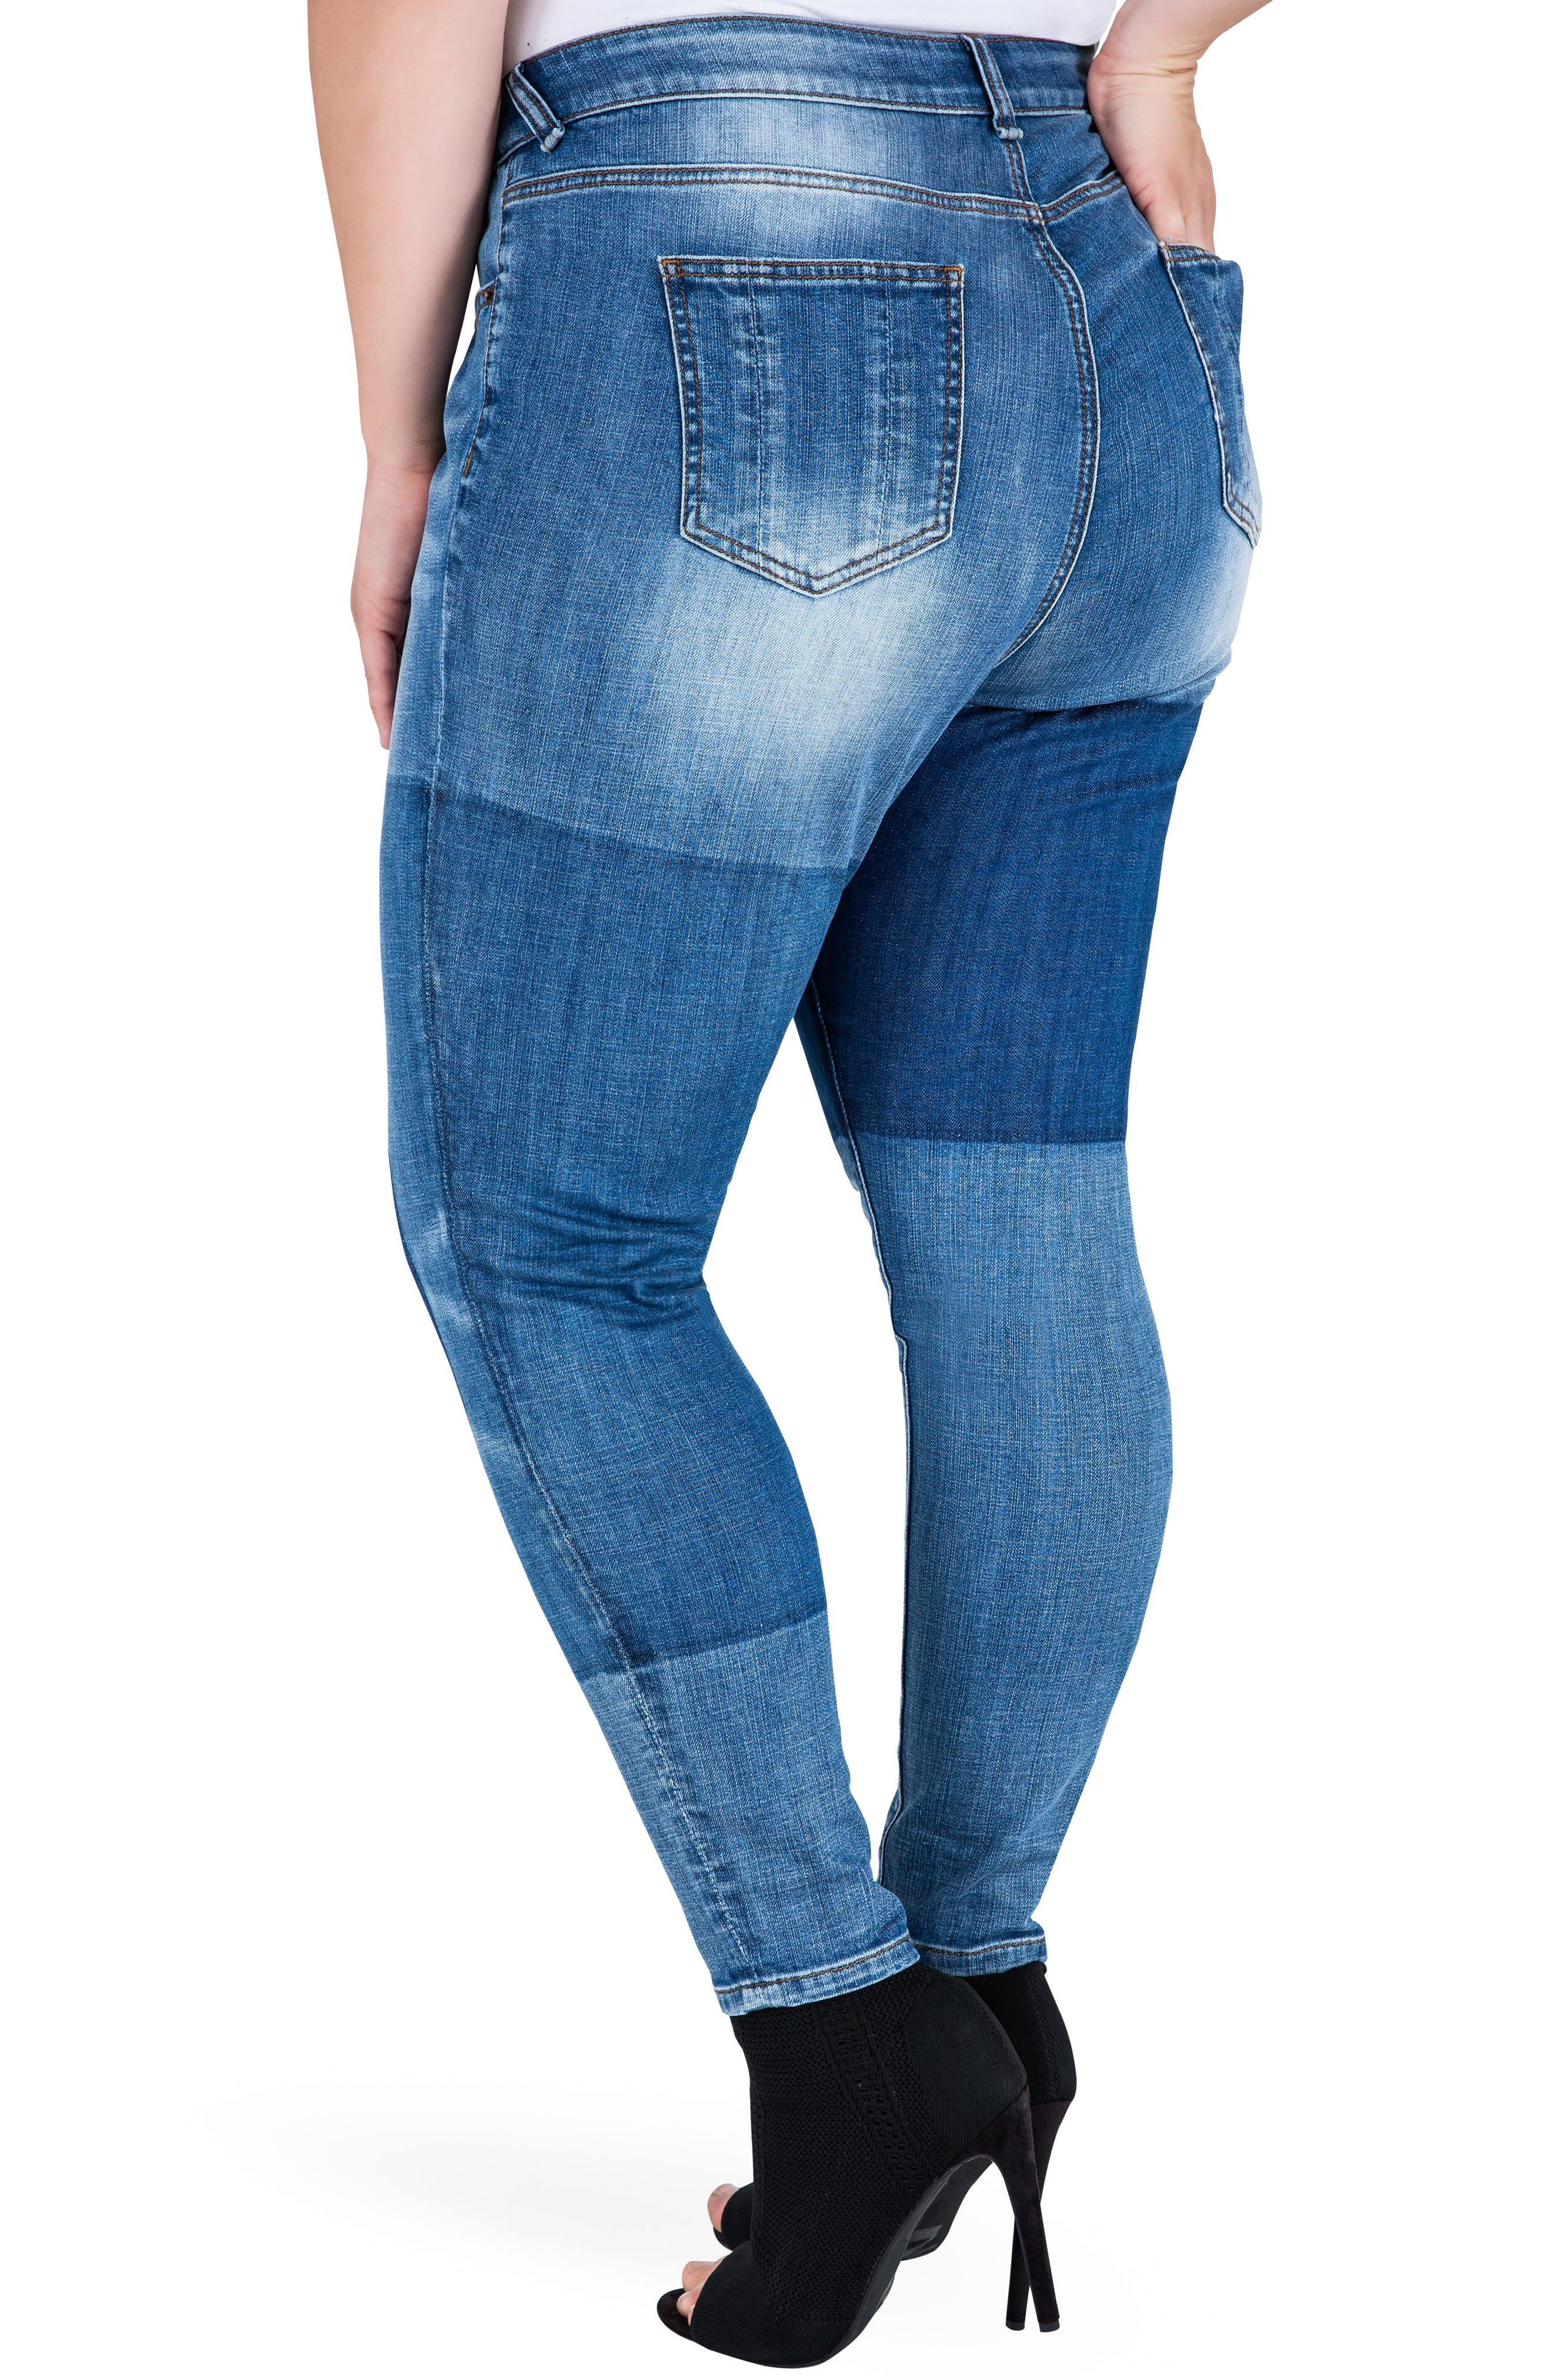 Isabel Colorblock Skinny Jeans,                             Alternate thumbnail 2, color,                             PERIWINKLE